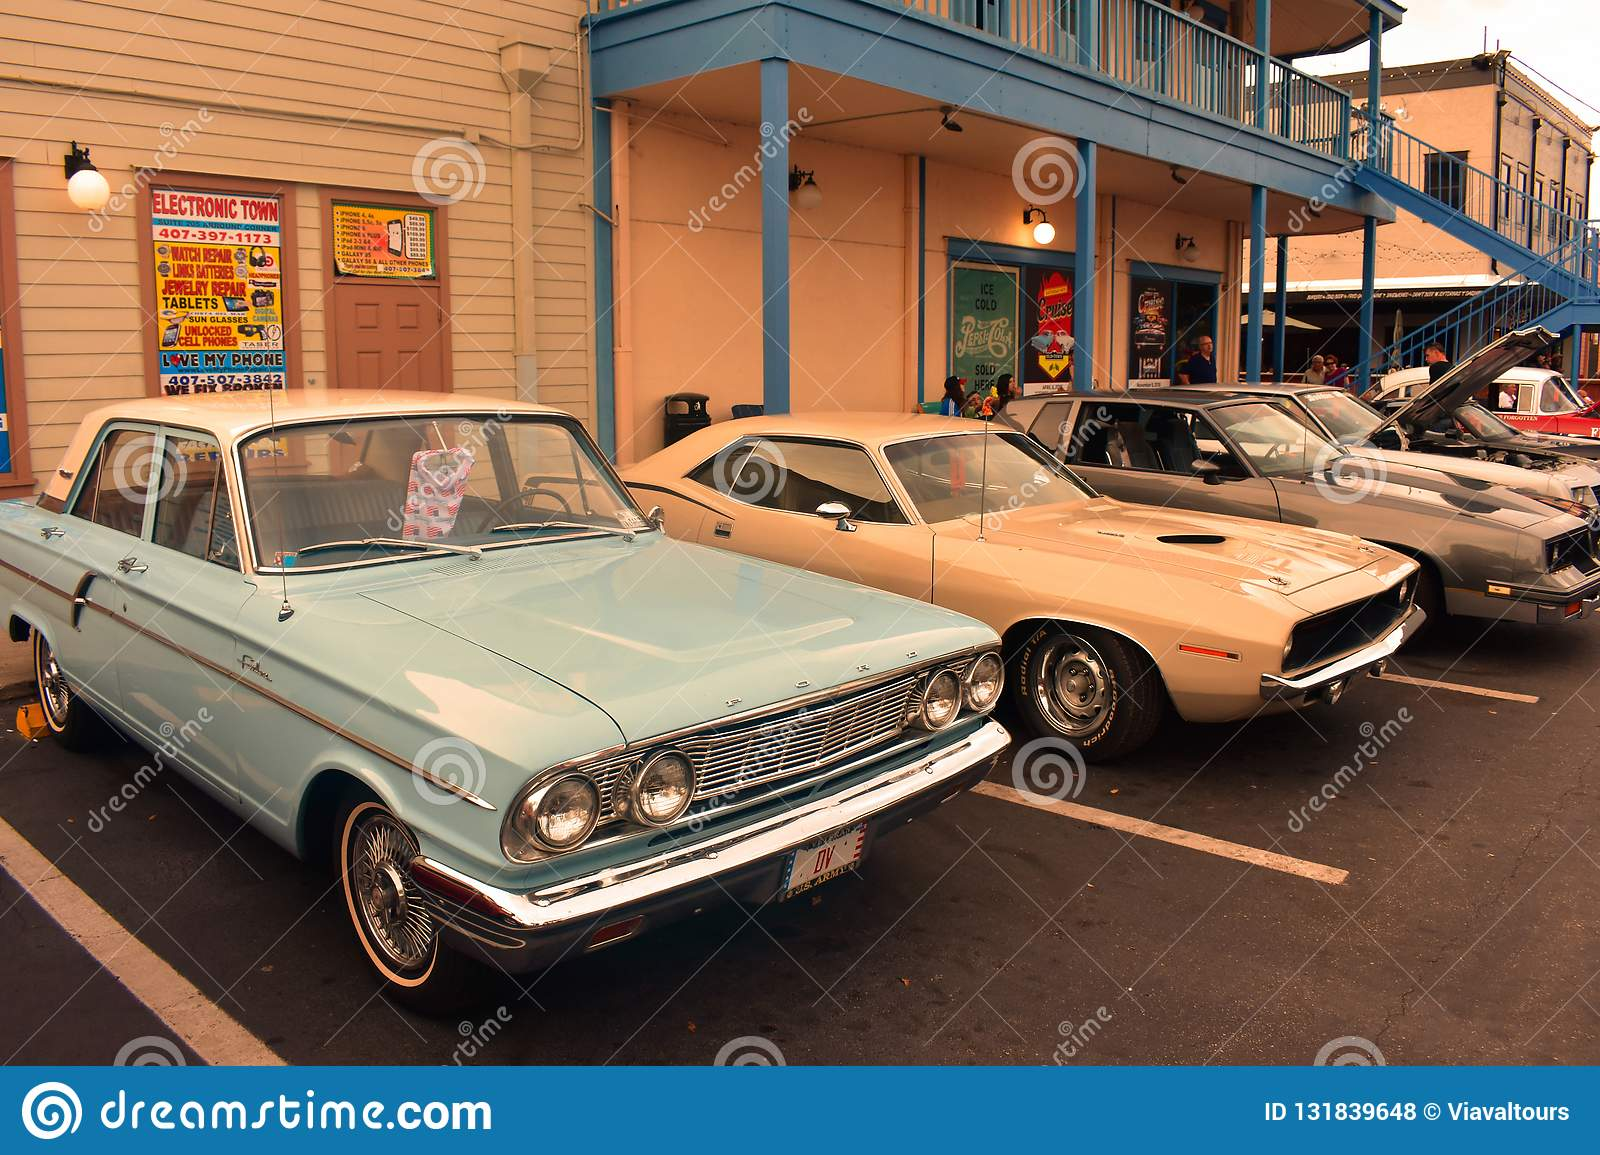 Traditional Saturday Nite Classic Car Show Is A Weekend Tradition